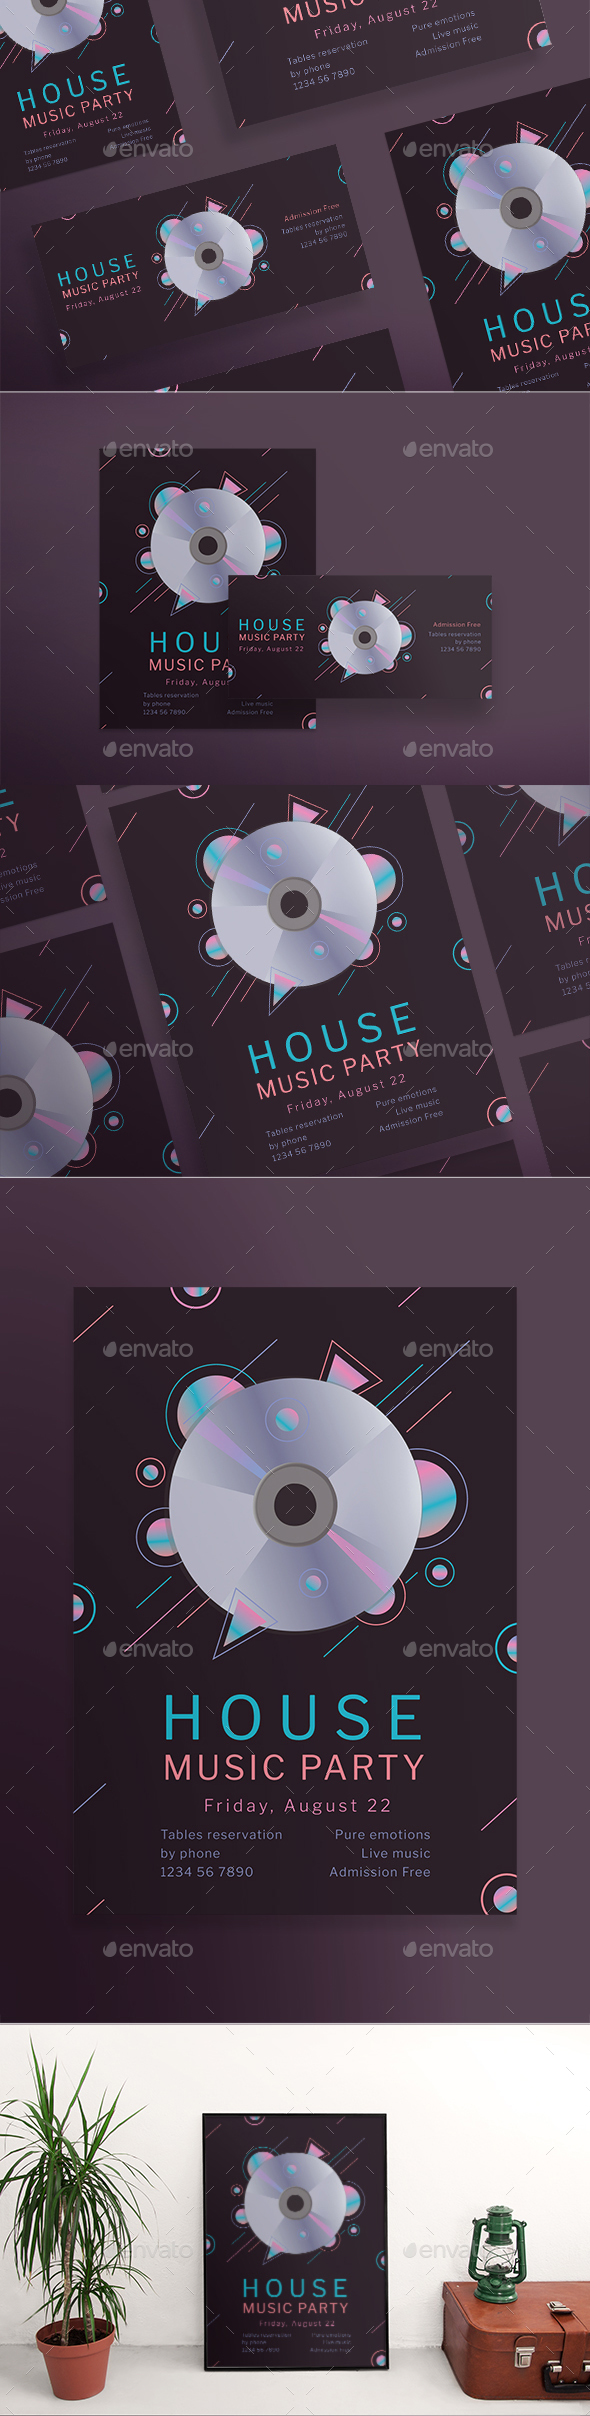 Music Party Flyers - Clubs & Parties Events